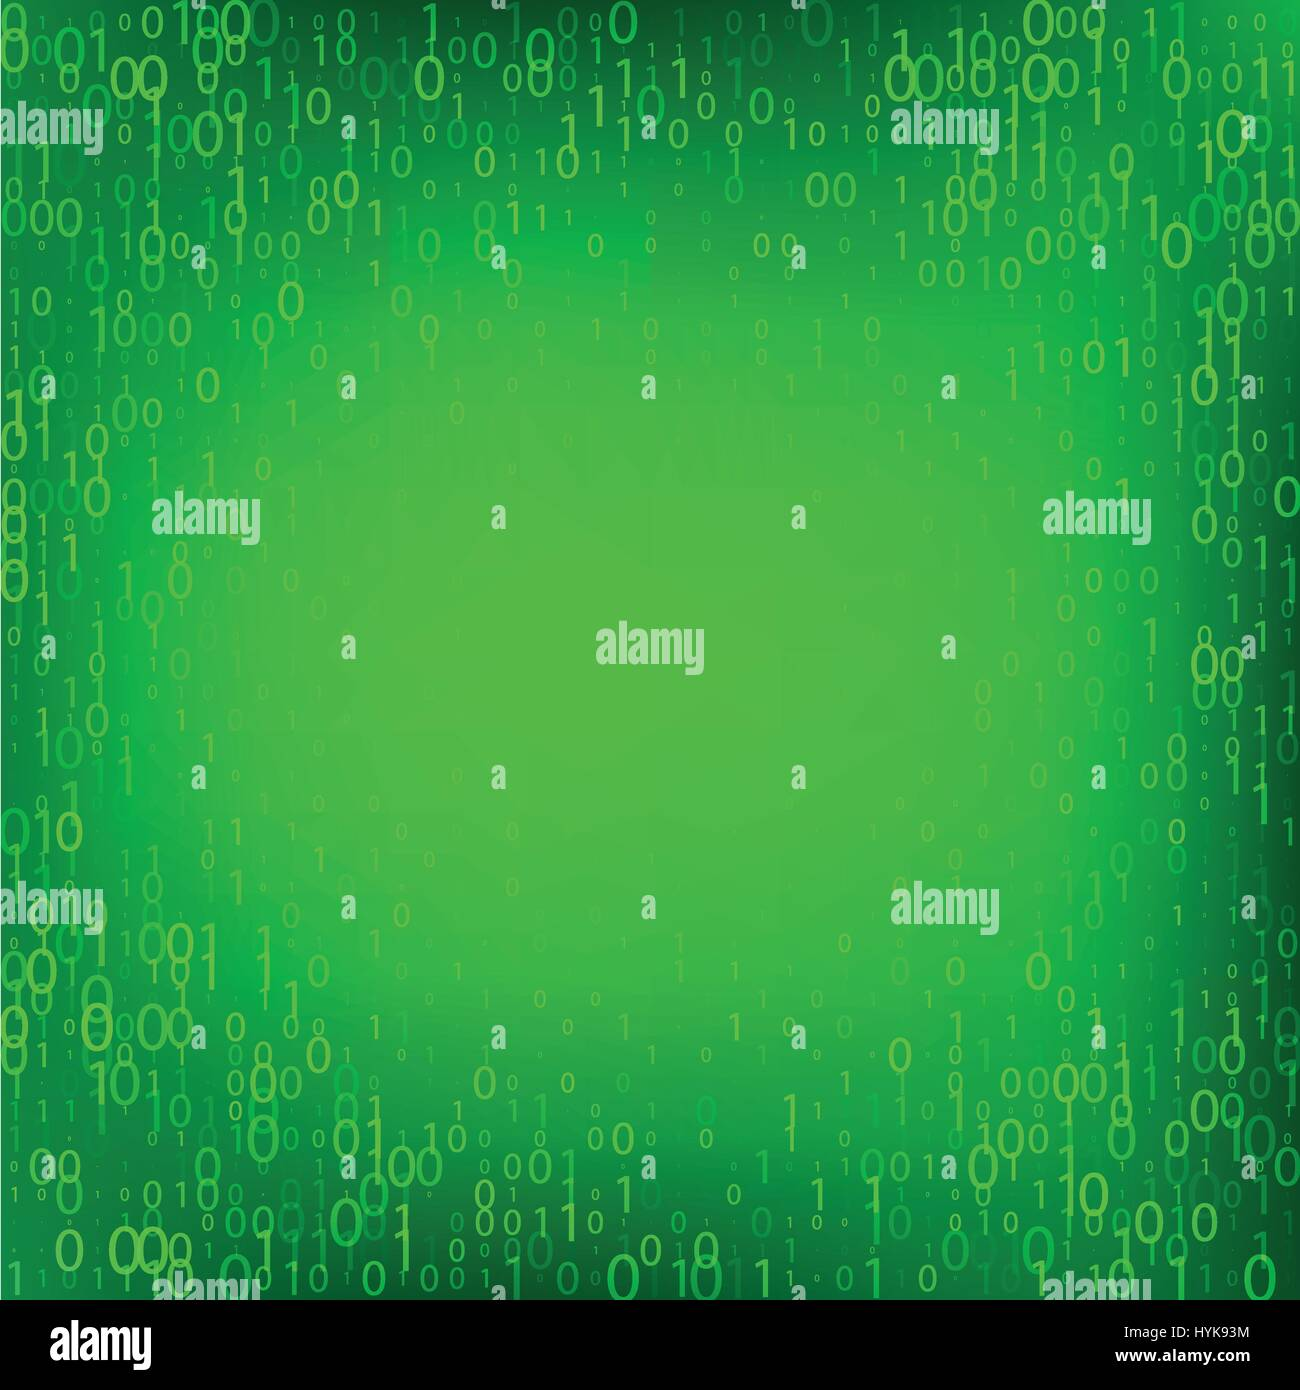 Isolated abstract green color binary code fall background, programming element backdrop vector illustration - Stock Image